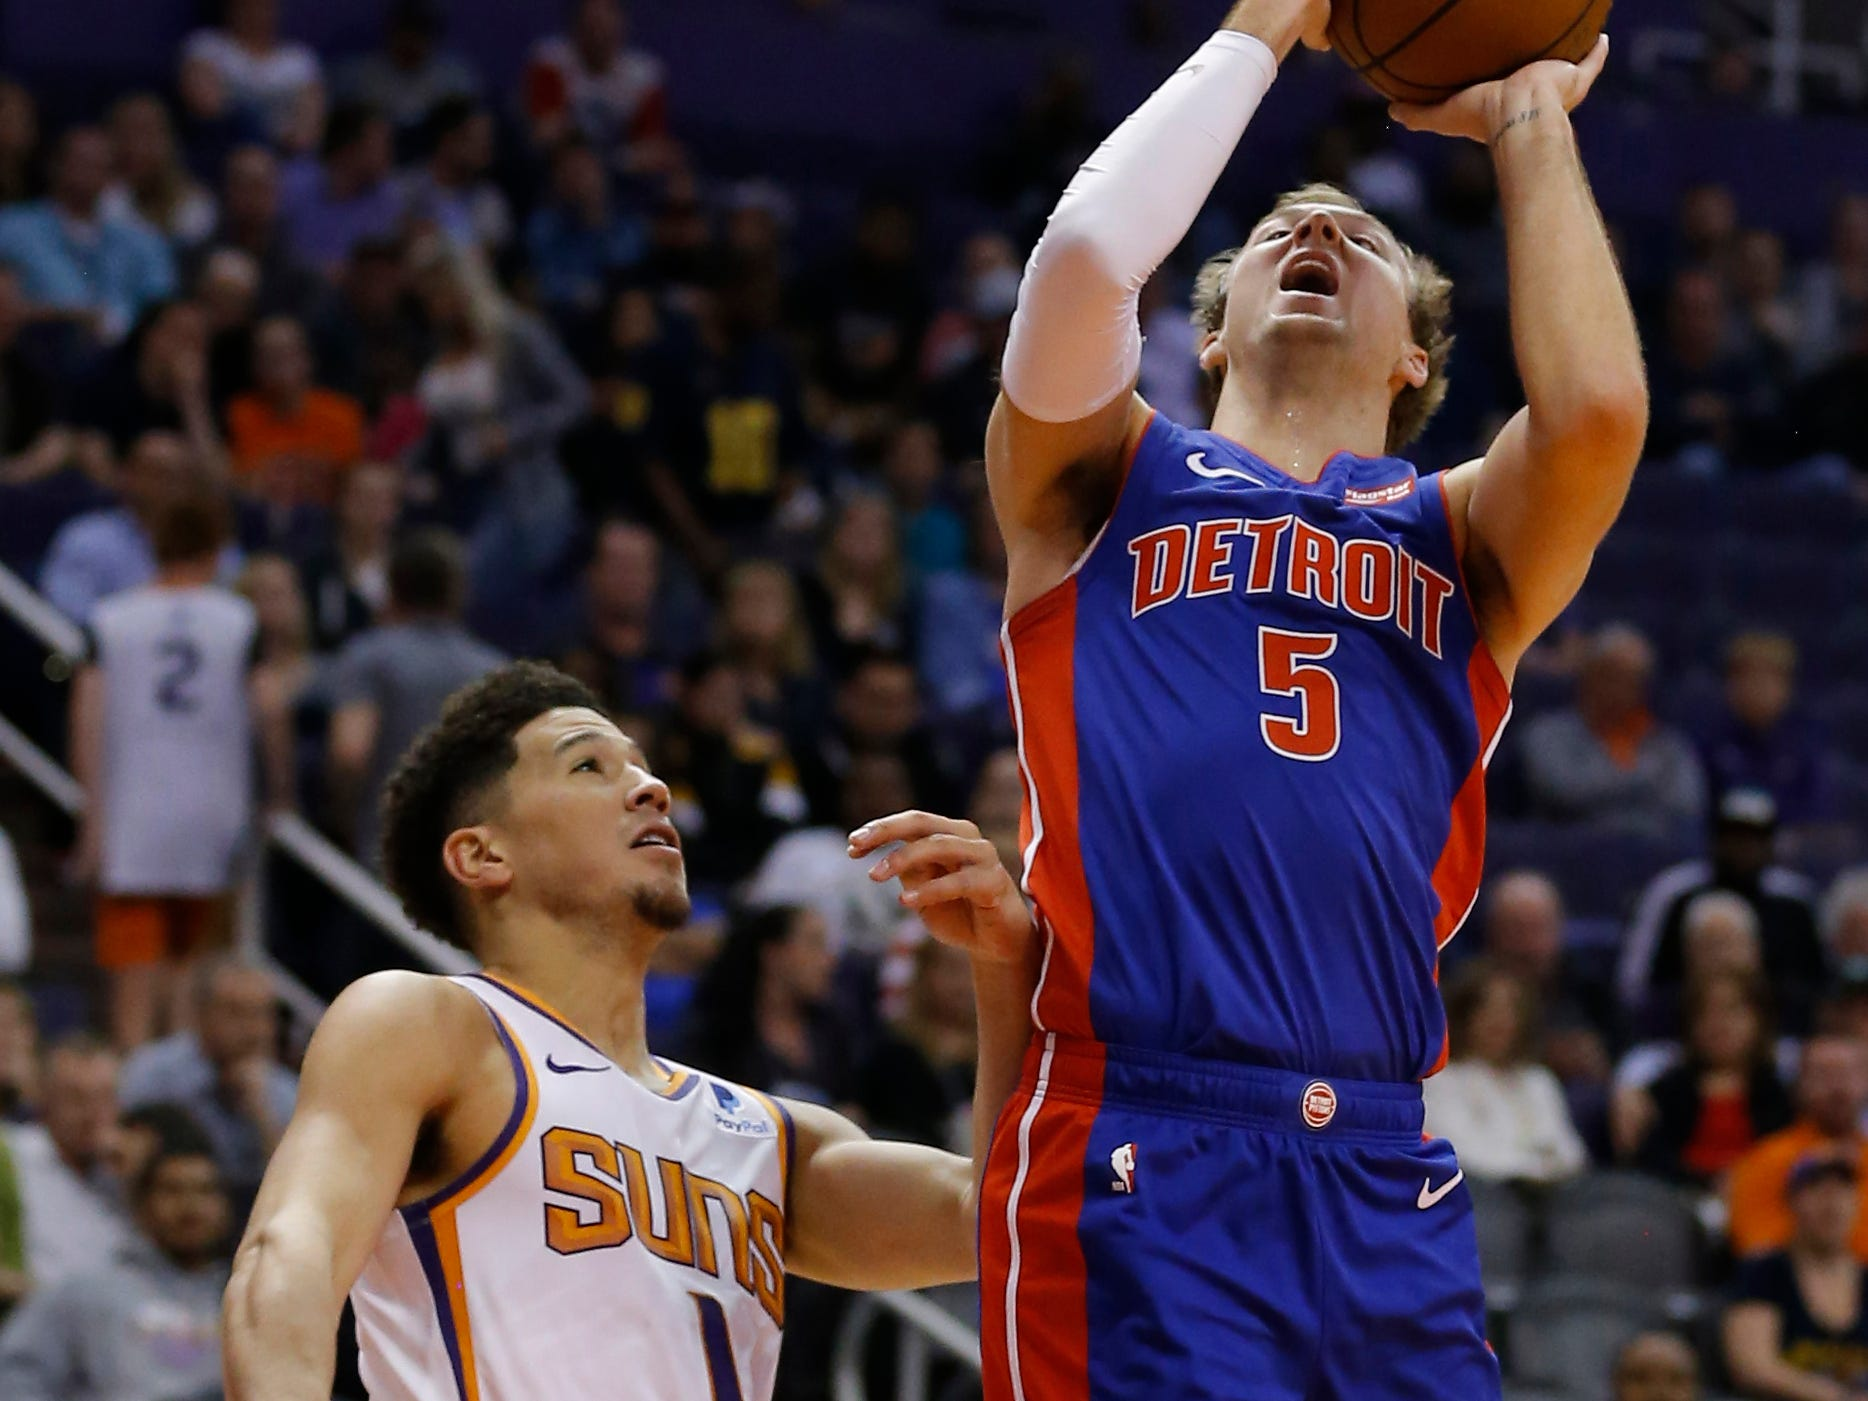 Mar 21, 2019; Phoenix, AZ, USA; Detroit Pistons guard Luke Kennard (5) gets fouled by Phoenix Suns guard Devin Booker (1) in the second half during an NBA basketball game at Talking Stick Resort Arena.